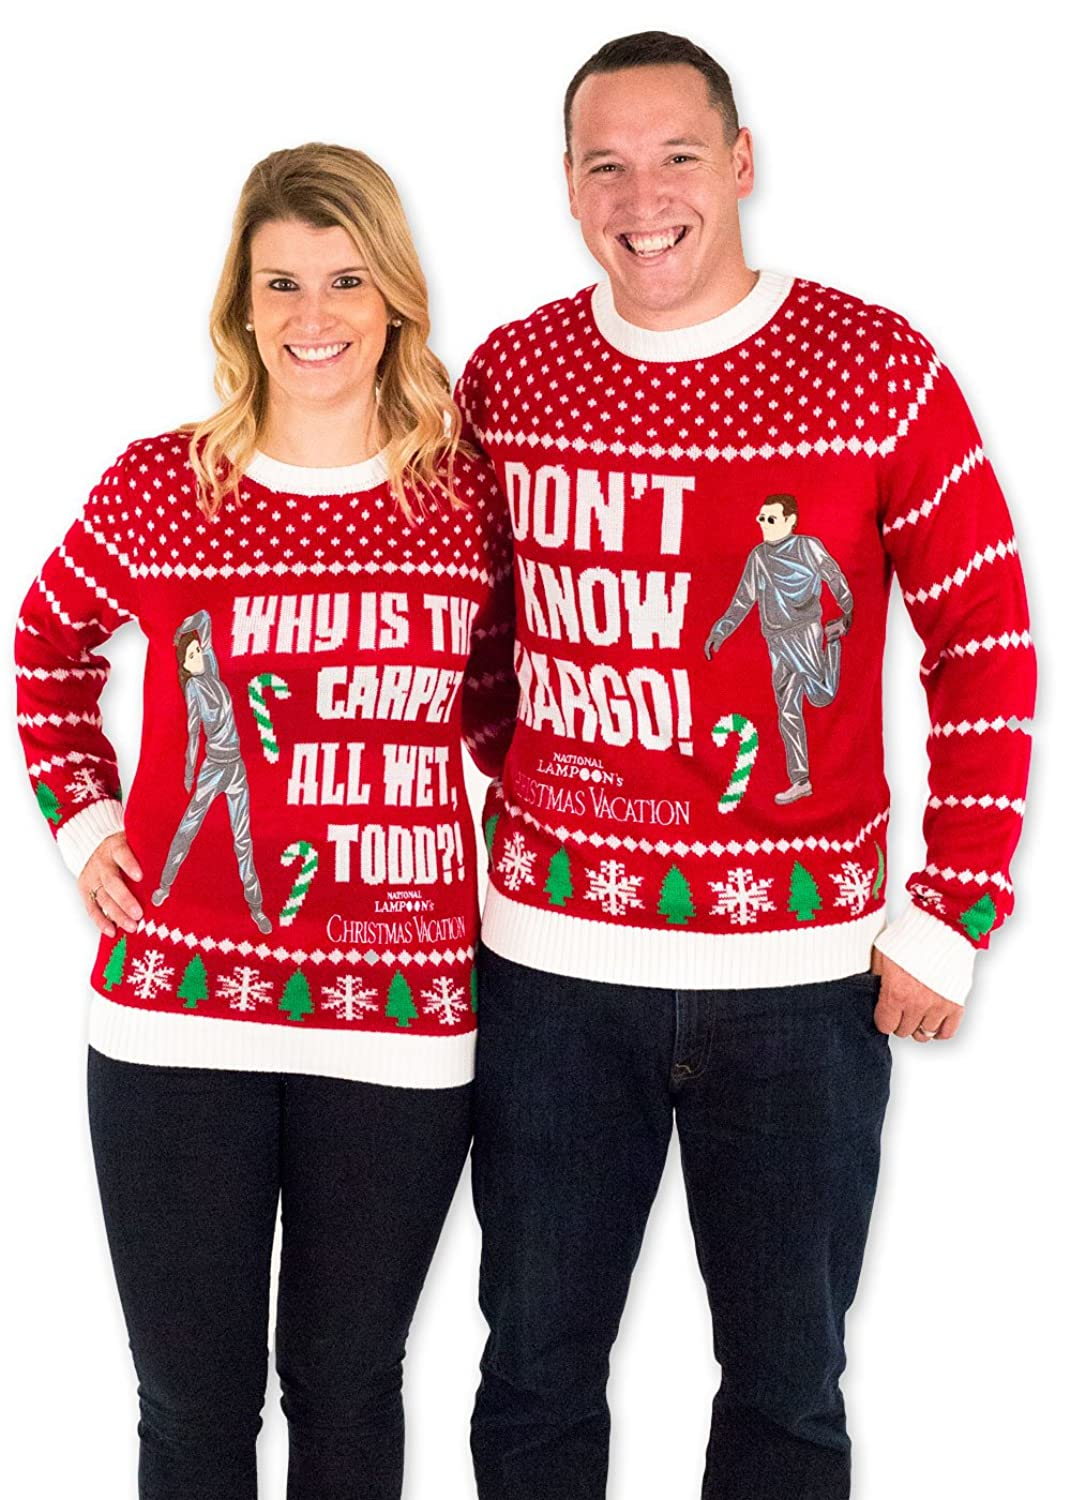 Men S Christmas Vacation I Don T Know Margo Ugly Sweater In Red By